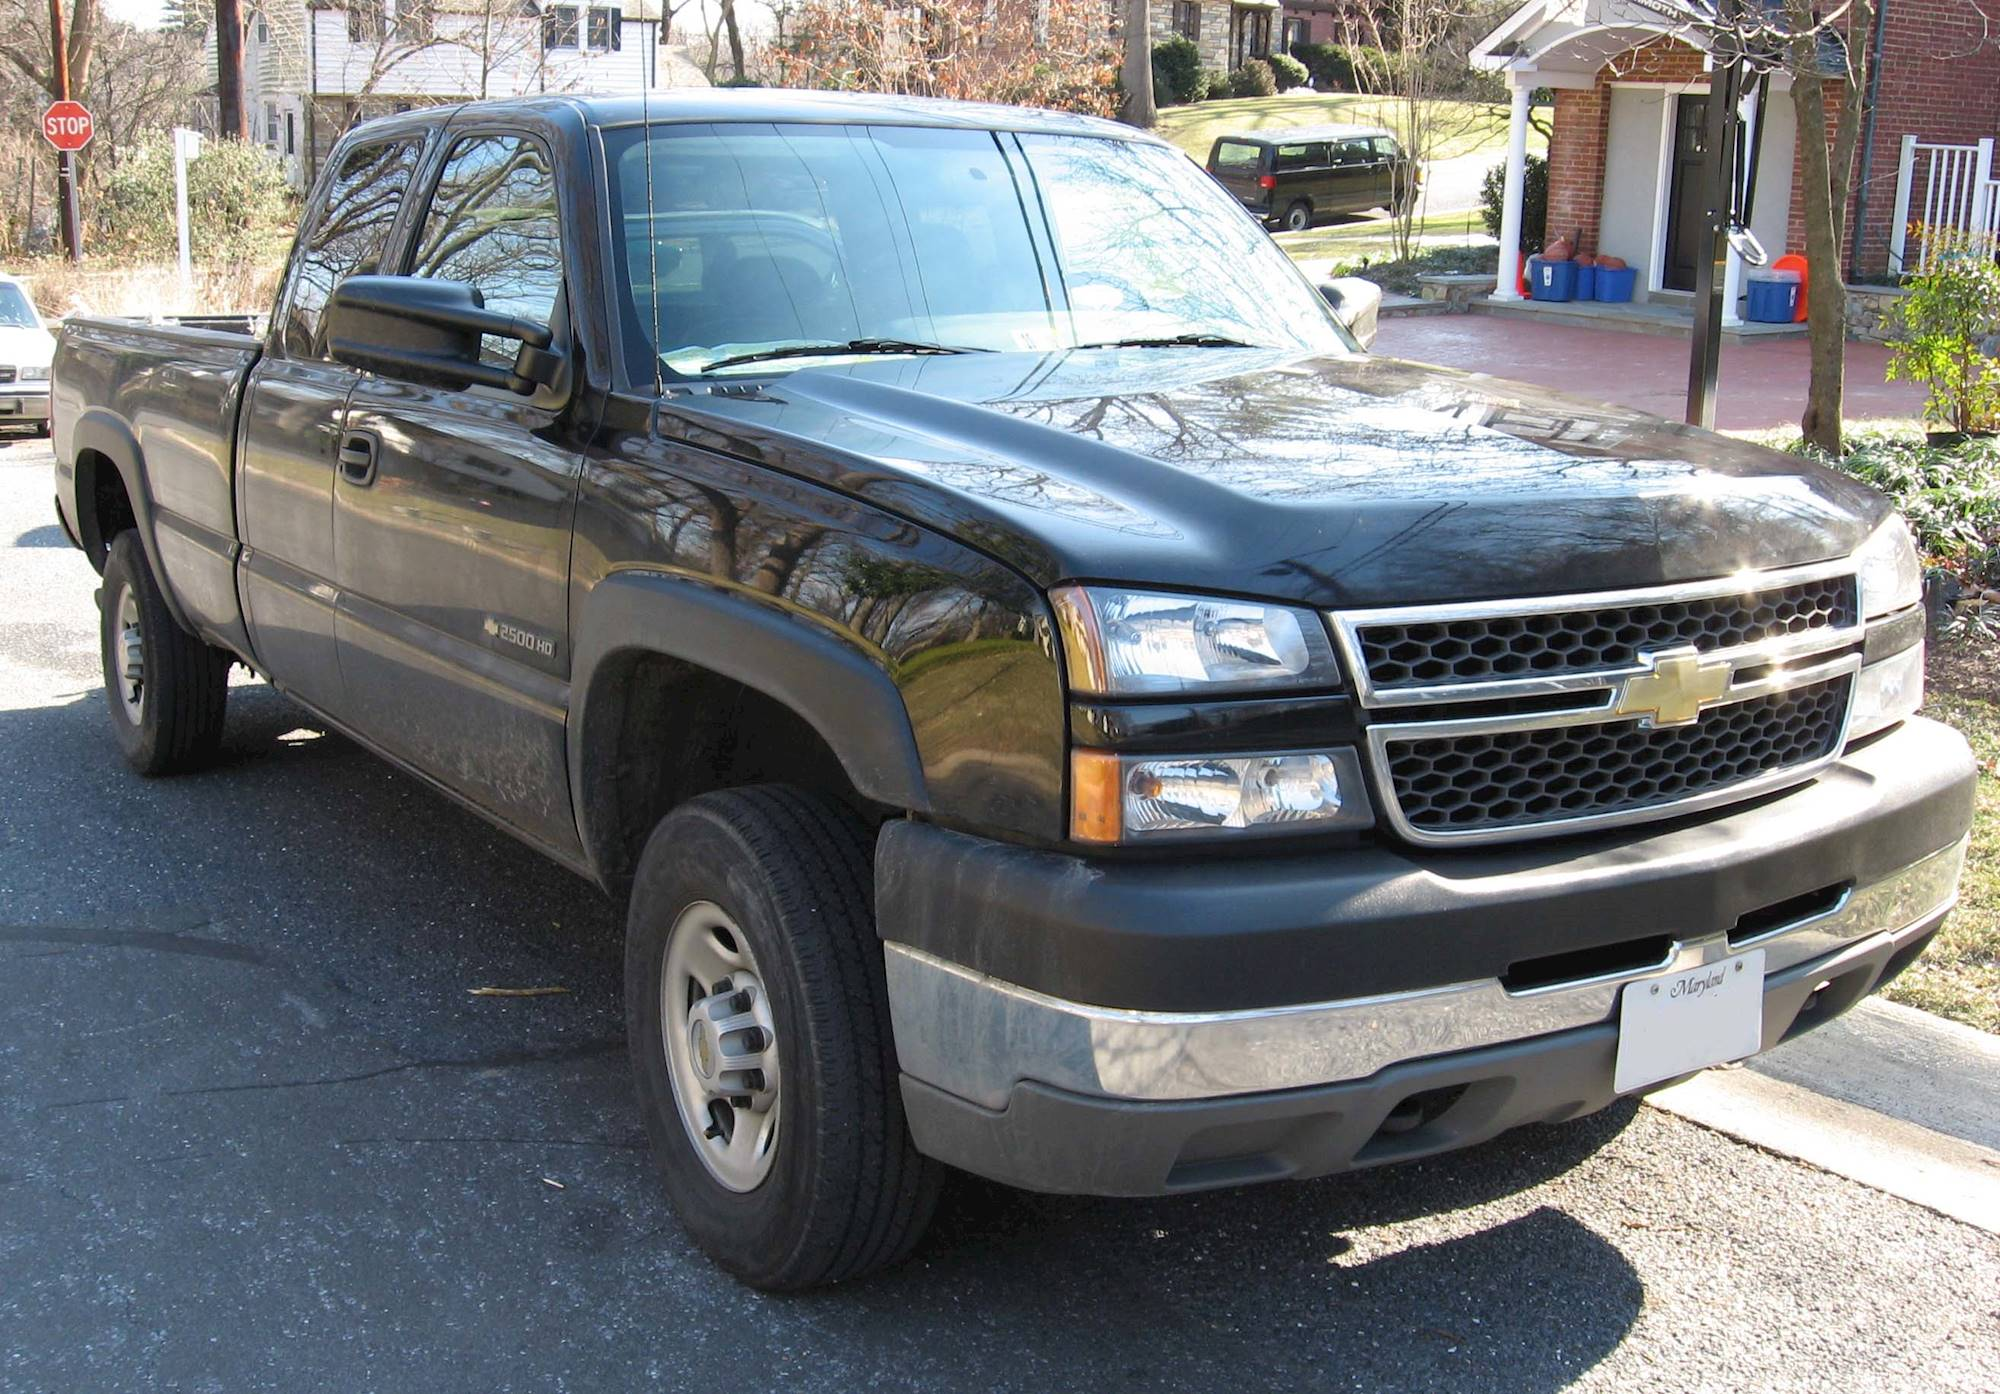 2007 Chevrolet Silverado 2500HD LT1 4x2 Crew Cab 8 ft. box 167 in. WB 6-spd sequential shift ...